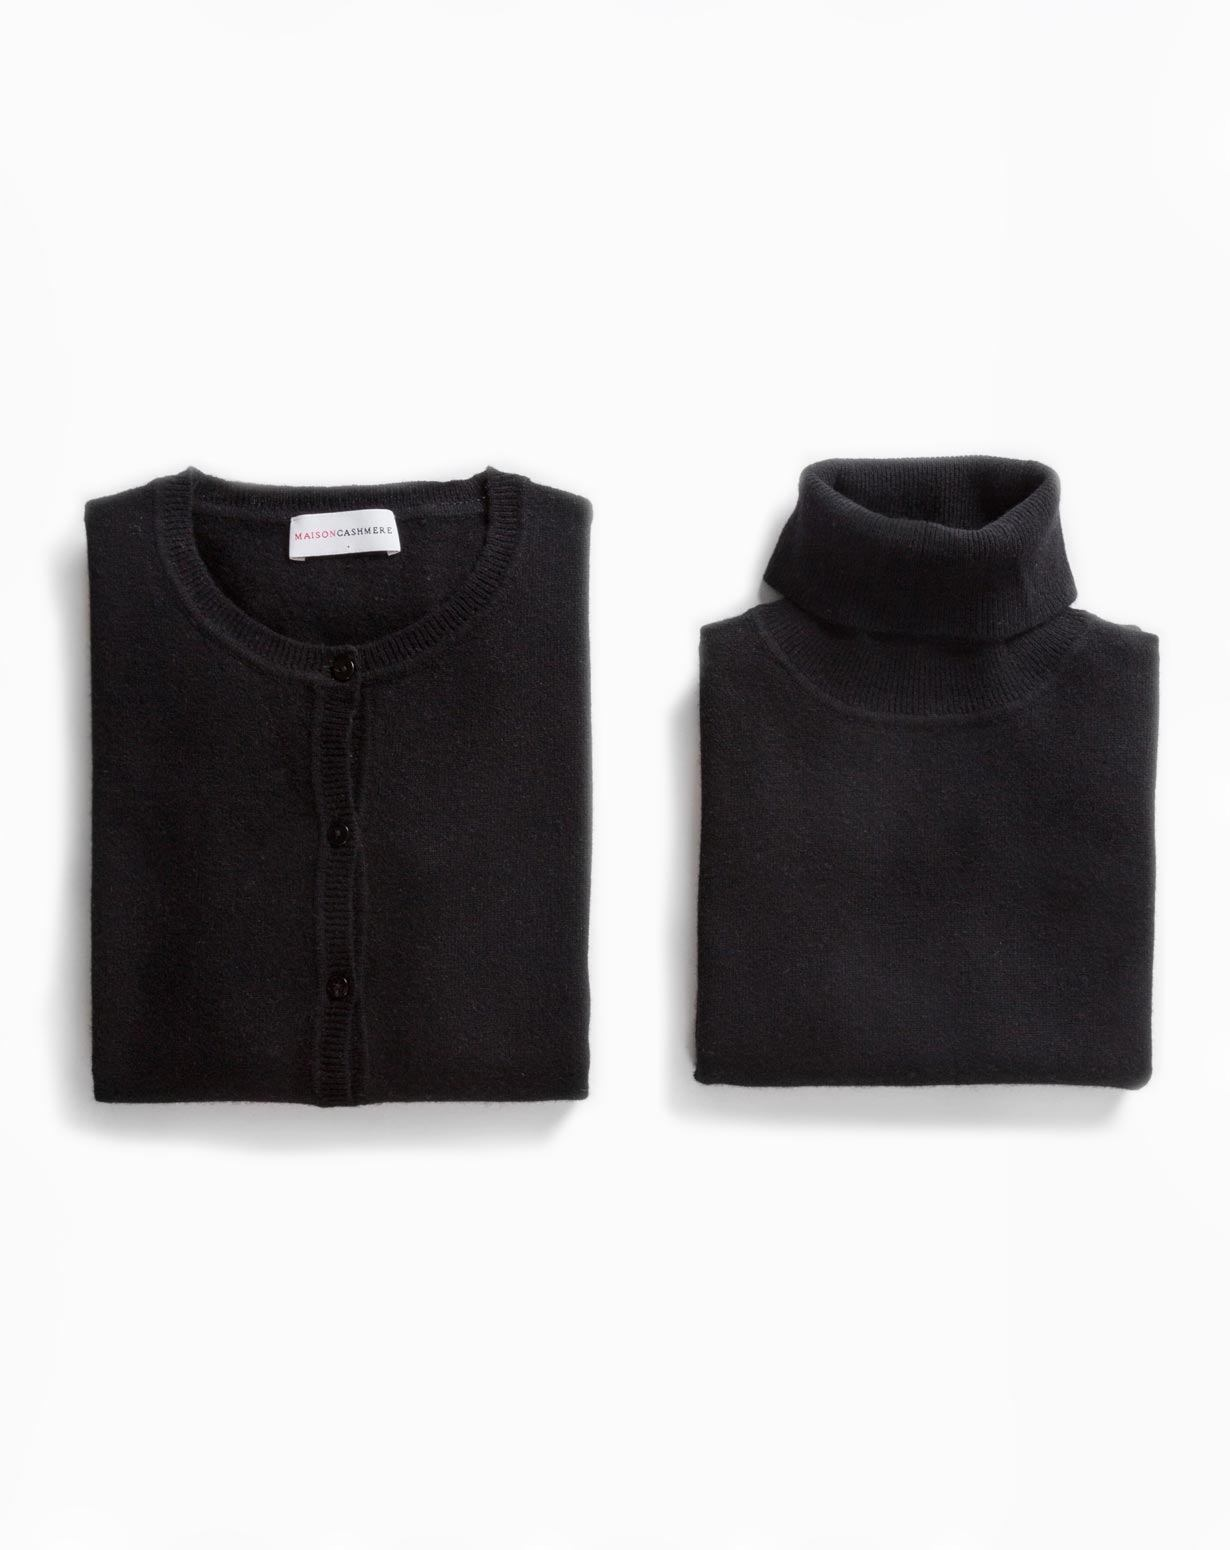 Women's Black Twinset - Cardigan & Turtleneck Vest